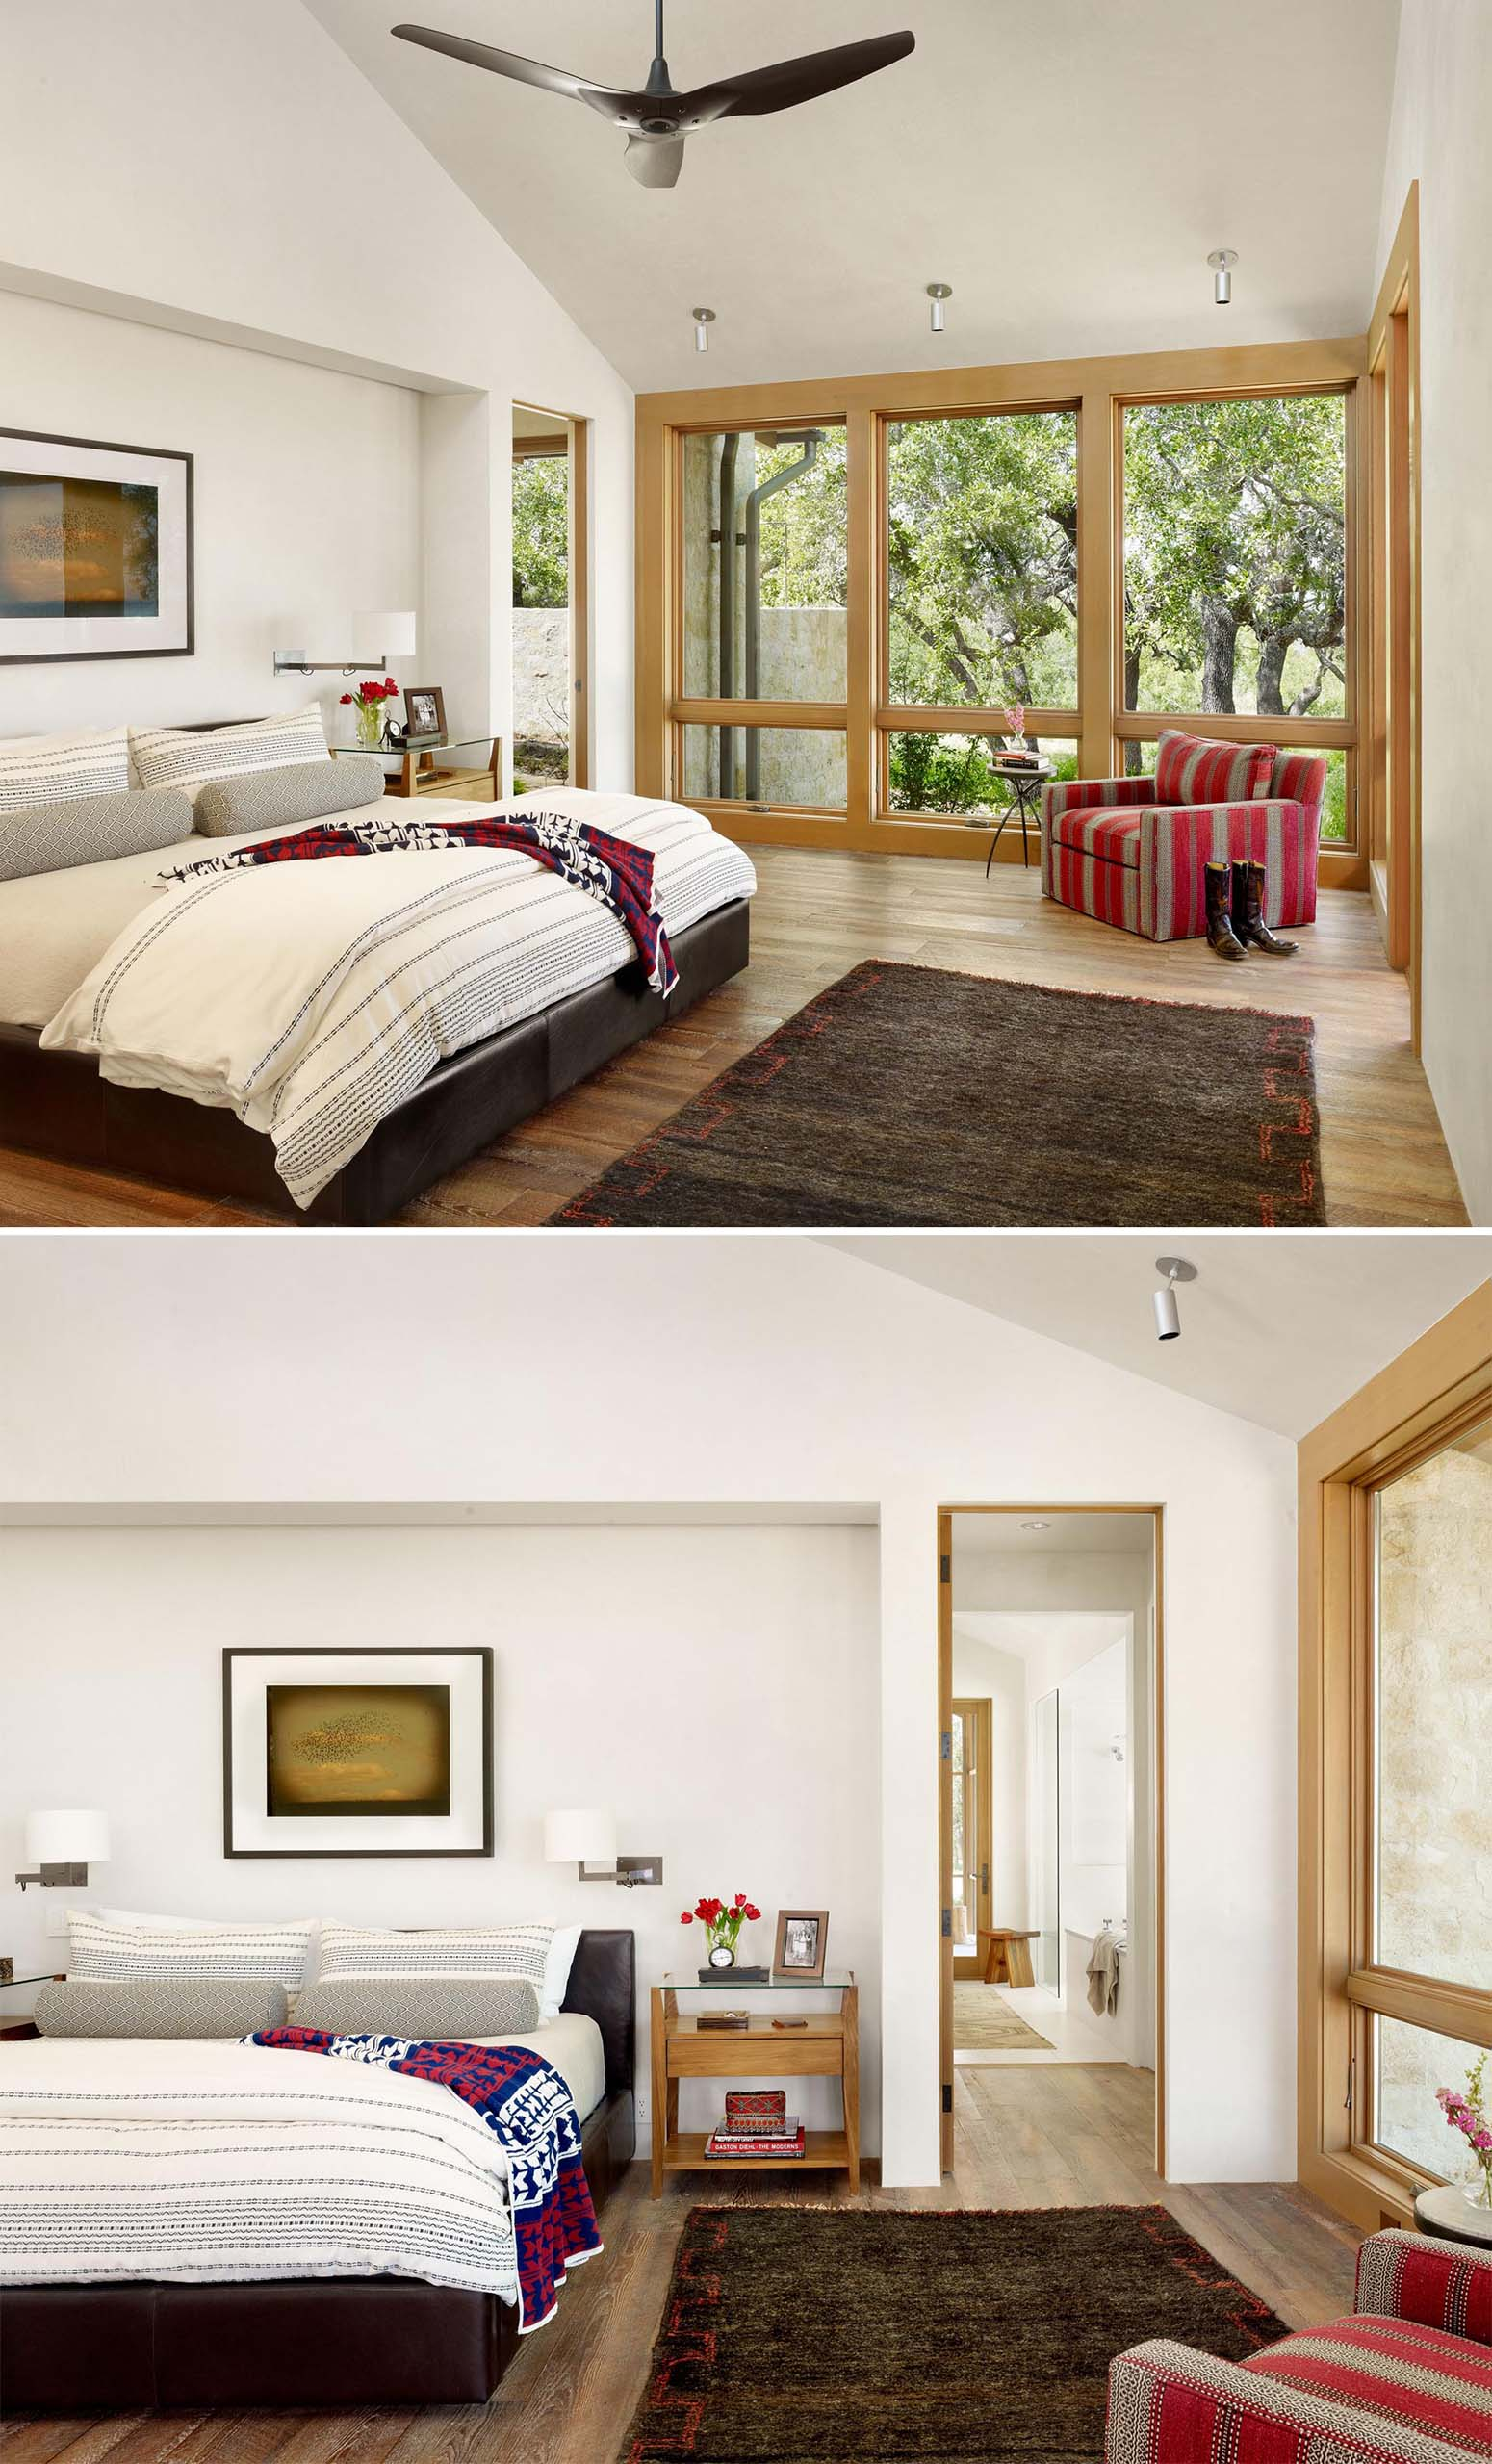 This primary bedroom features a vaulted ceiling, a bed that's recessed into the wall, and wood framed windows.